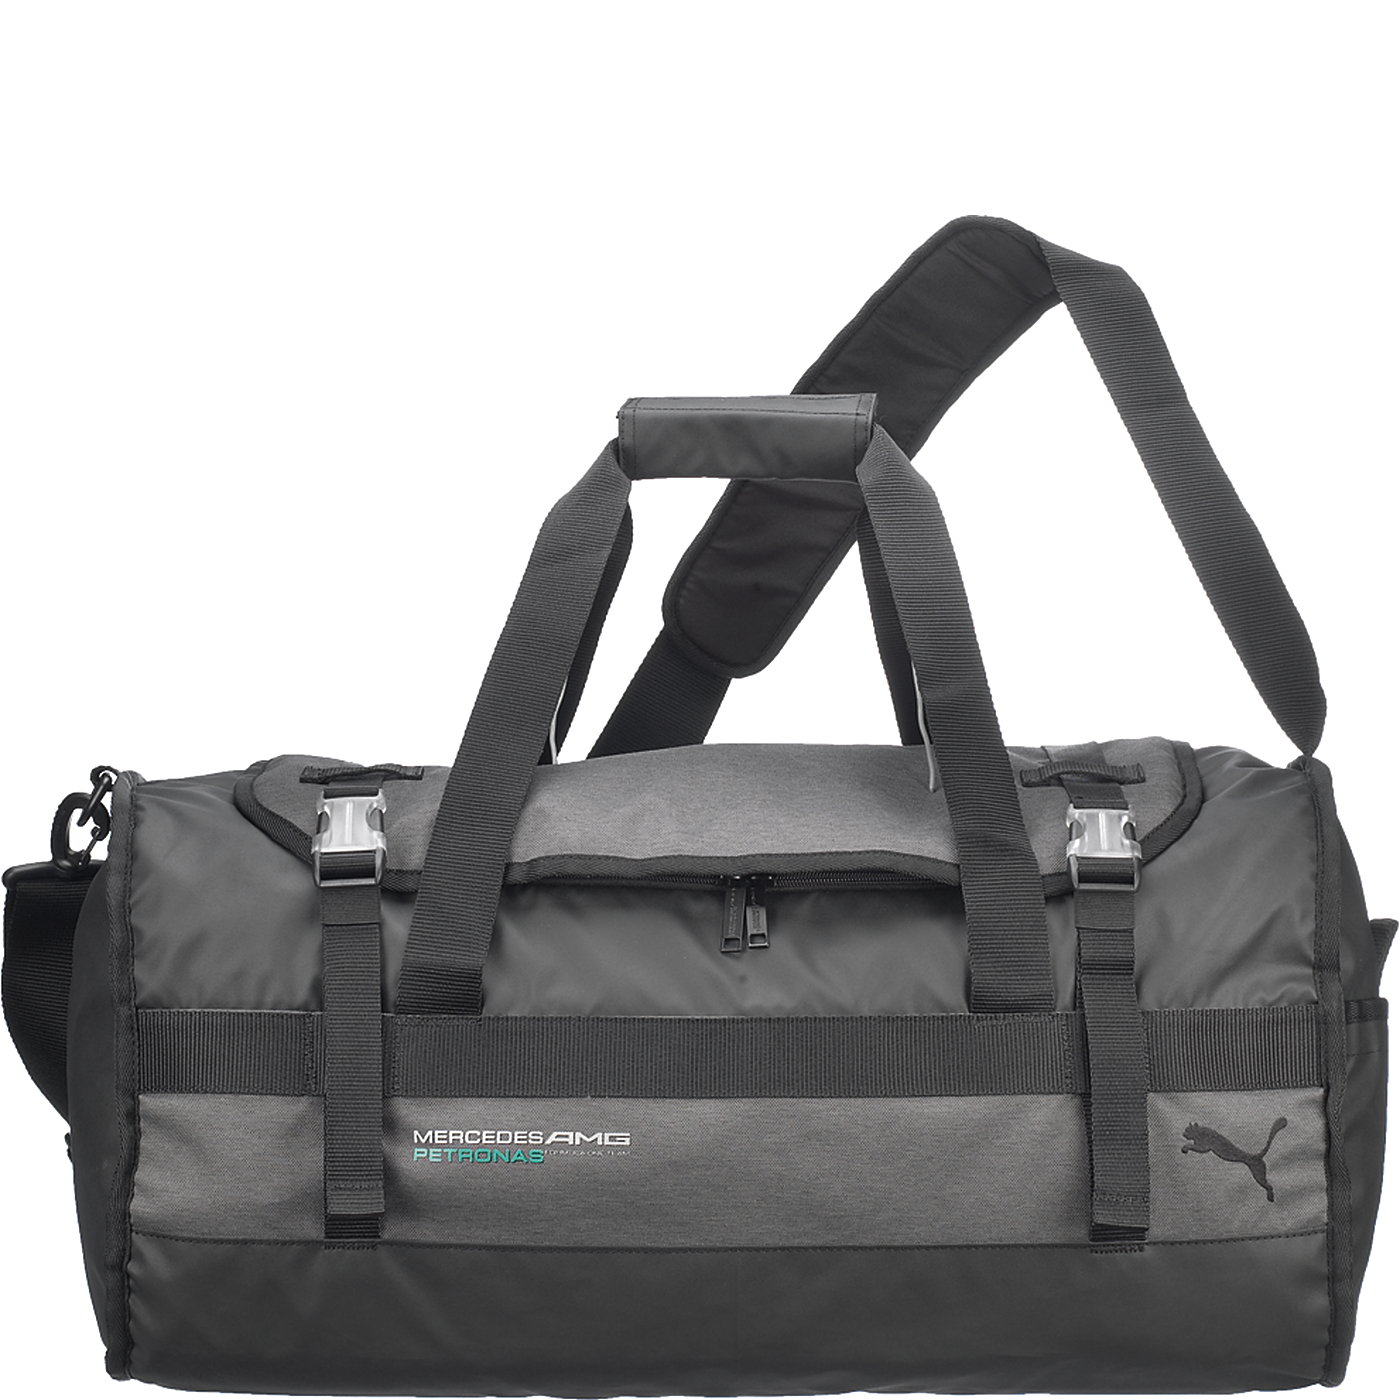 Puma MAMGP Replica Duffle Bag on PopScreen 5e8f8879db678